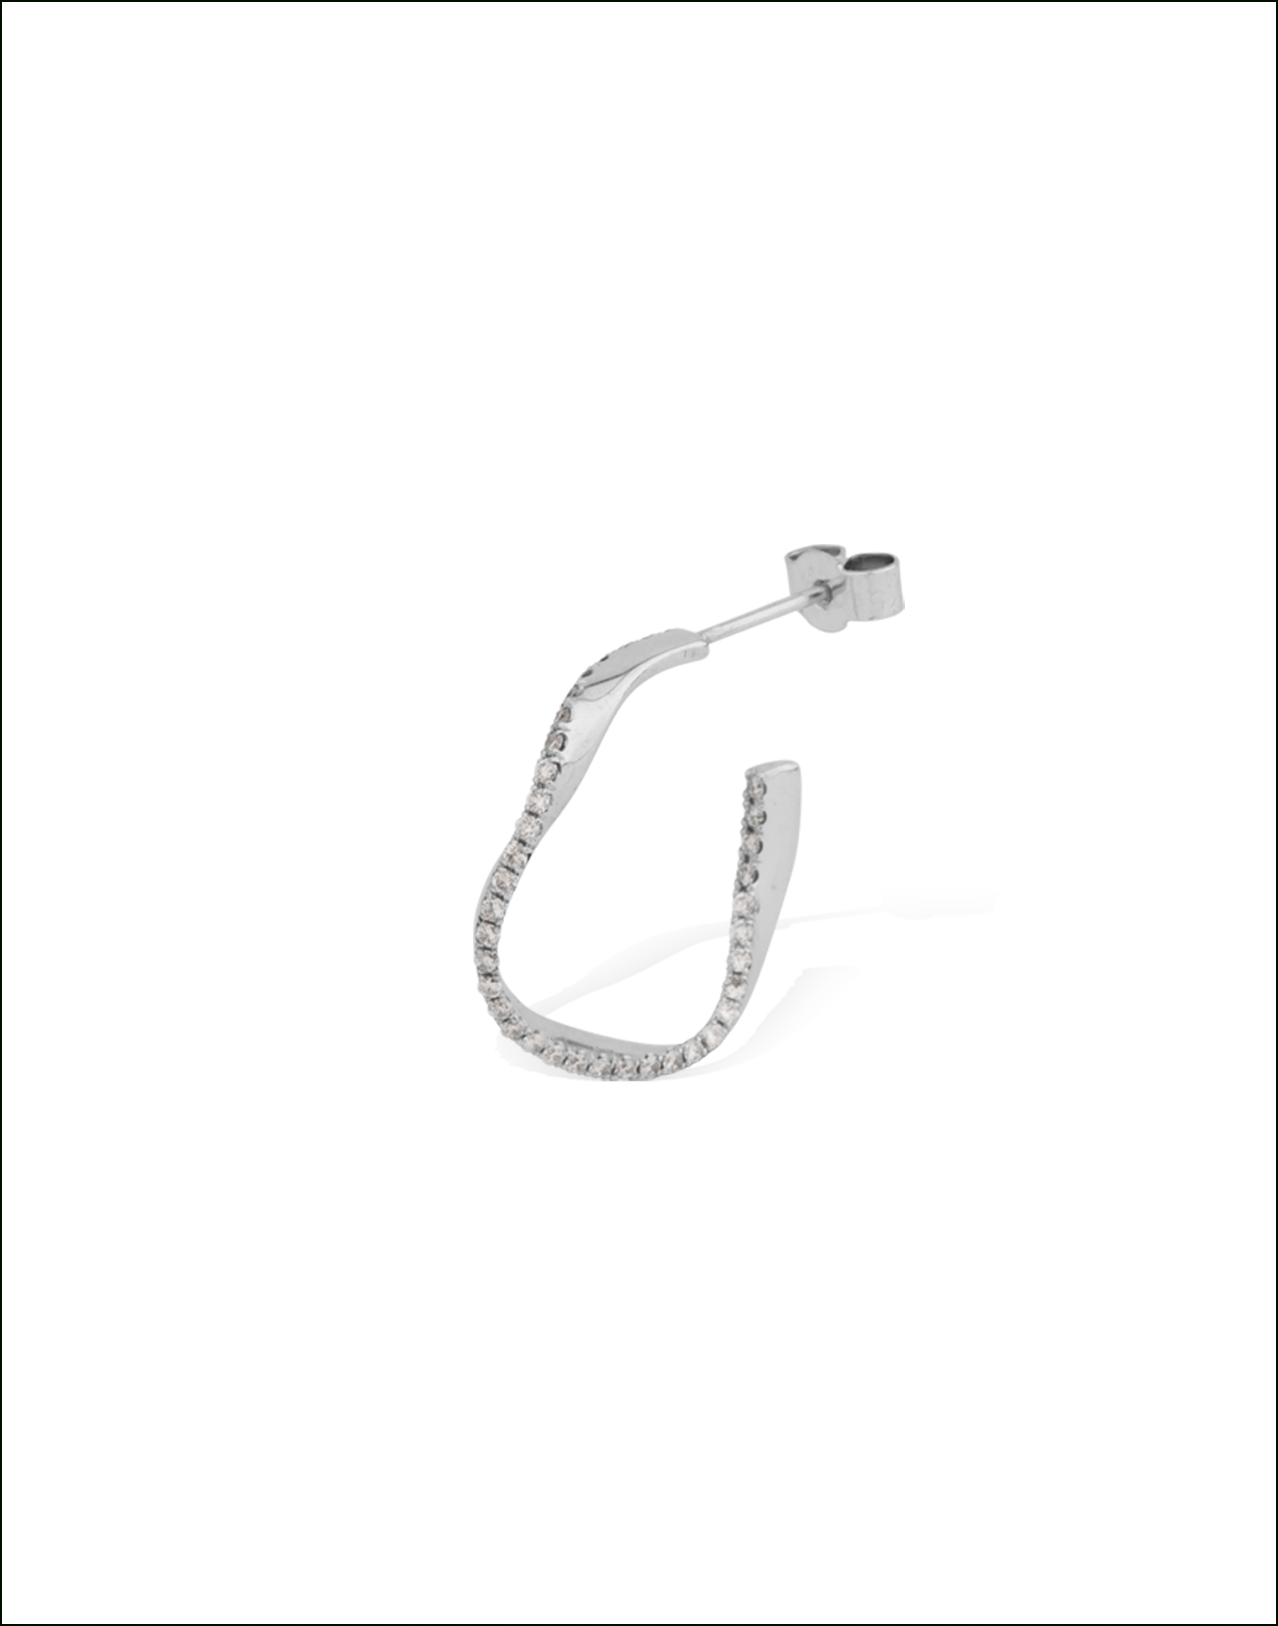 Completedworks-White-Gold-Diamond-Earring---Elegy-for-W-W---1-2.png